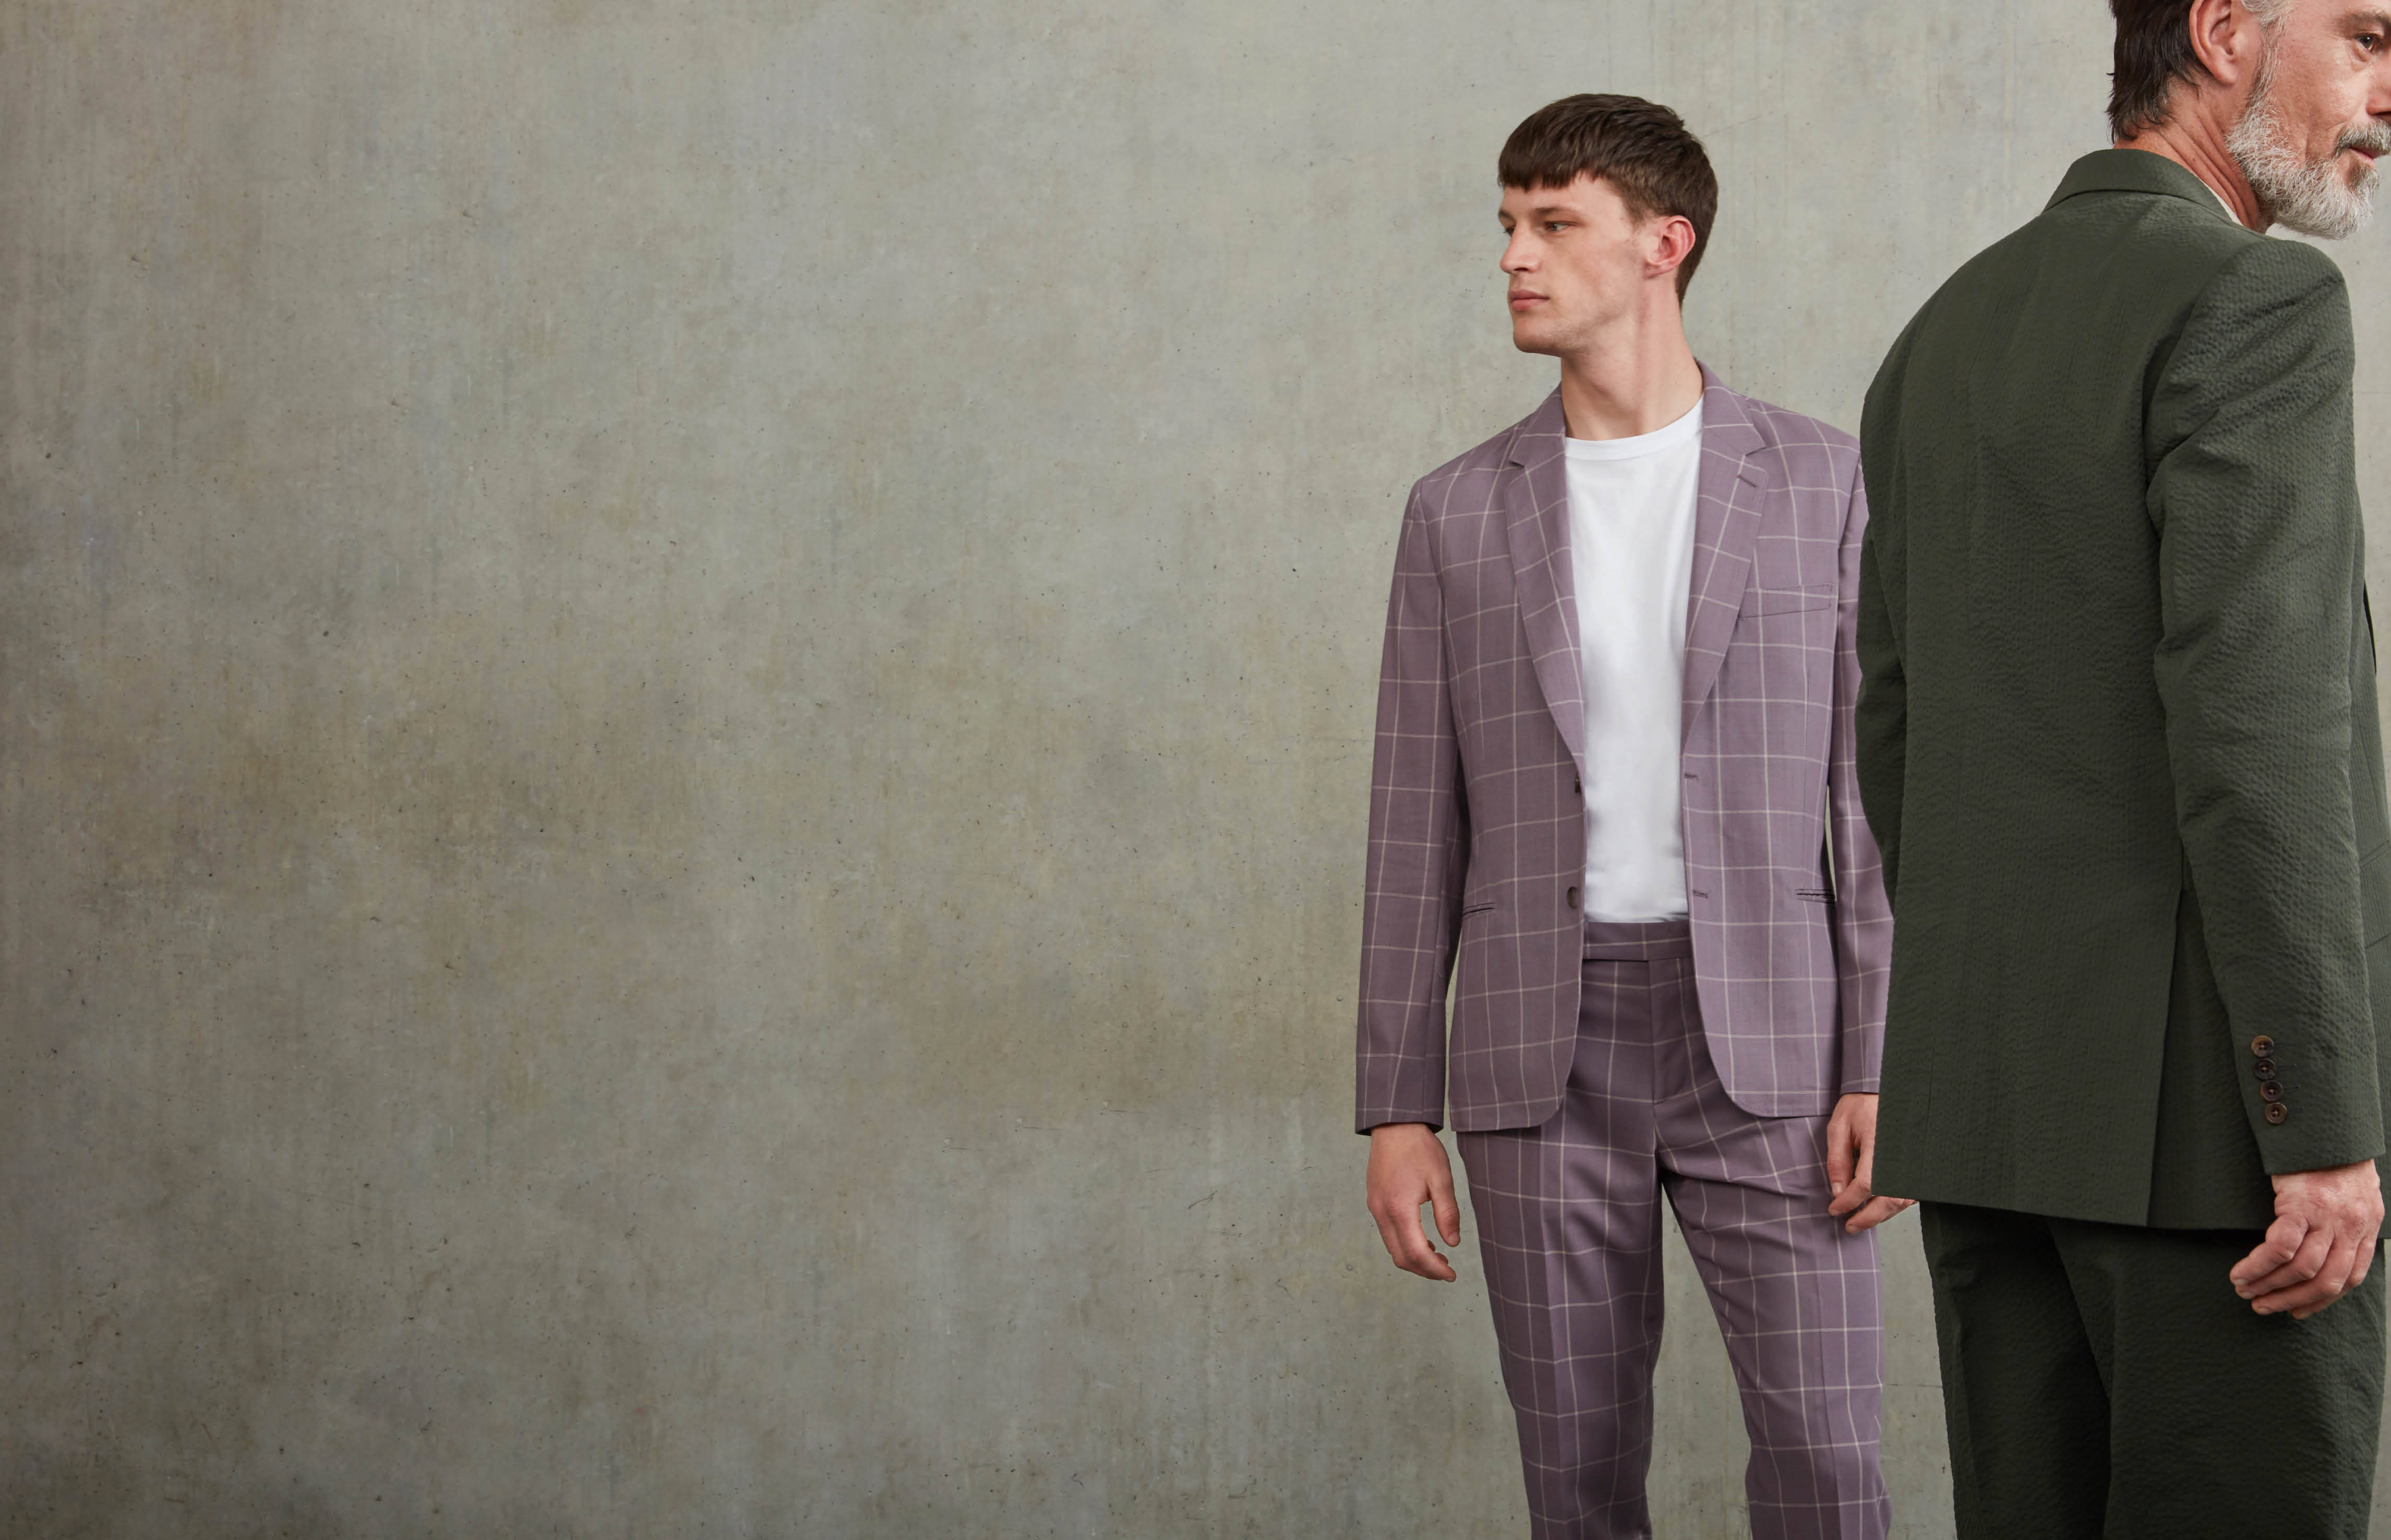 Making a case for the unexpected suit